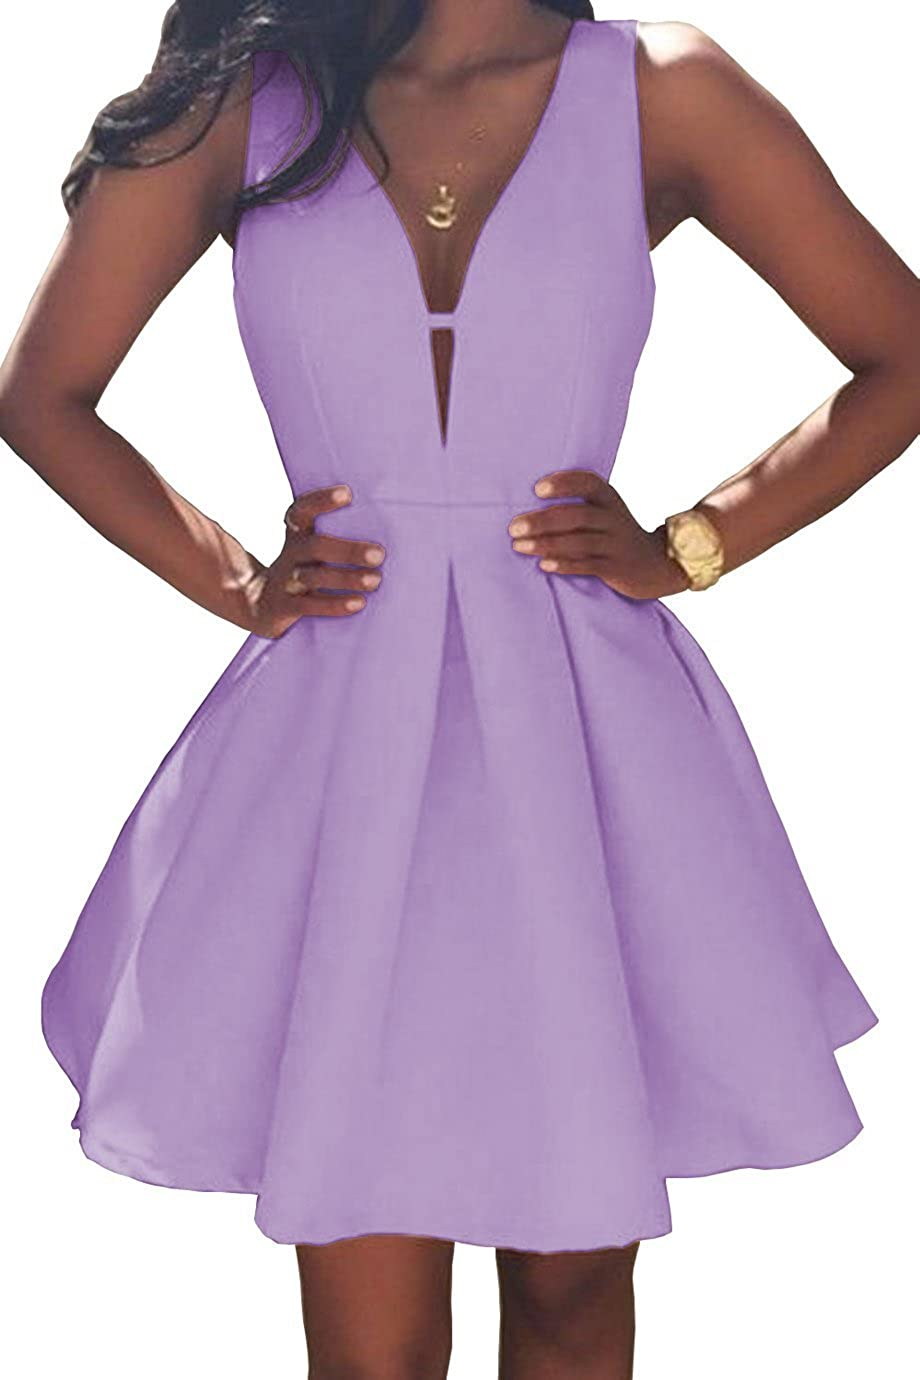 purplec JQLD Women's VNeck Aline Satin Homecoming Dress Short Evening Party Gown Ruched Skirt